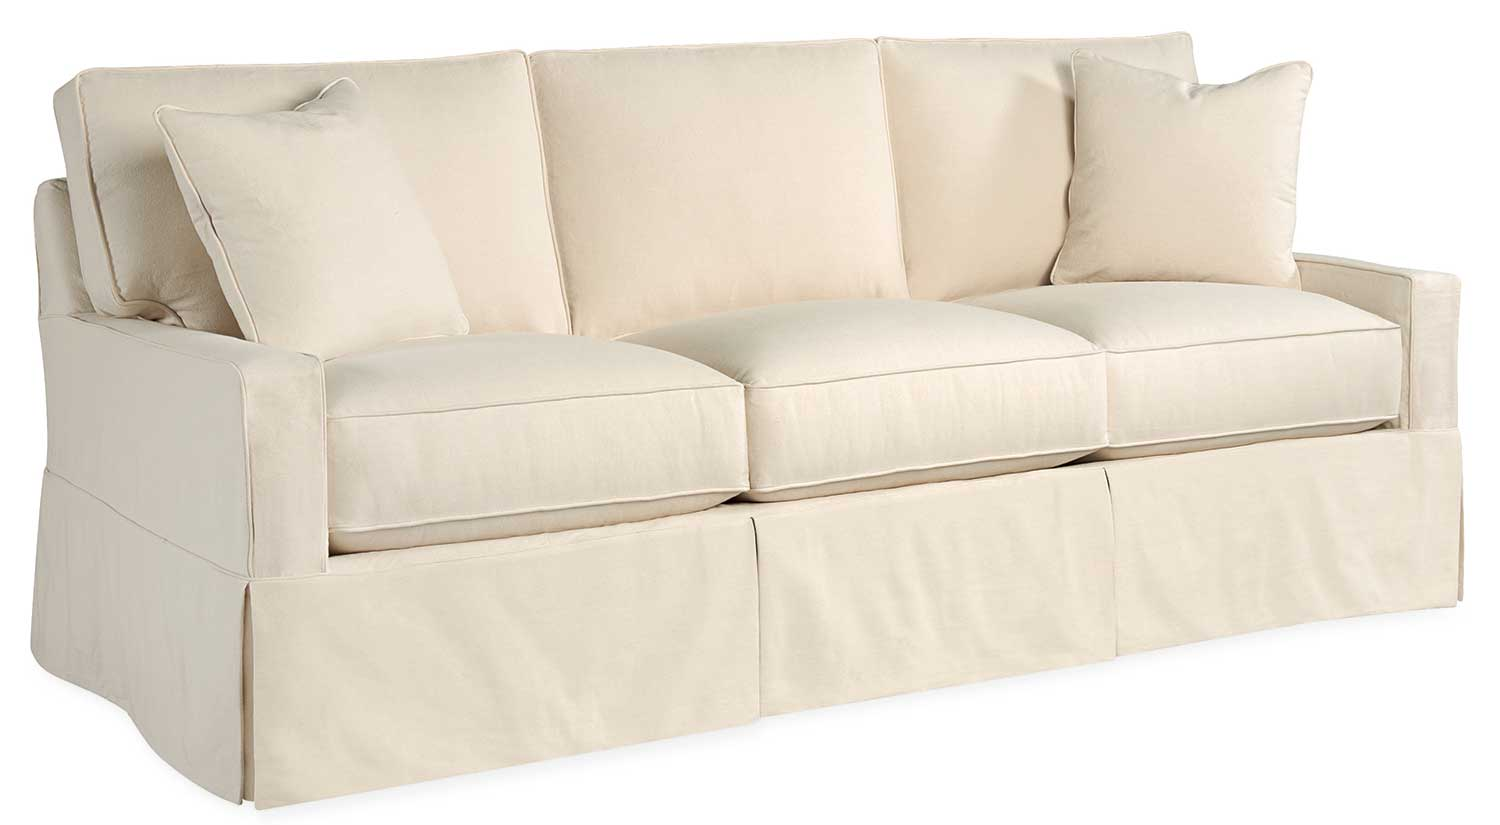 Incroyable Fritz Slipcovered Sofa